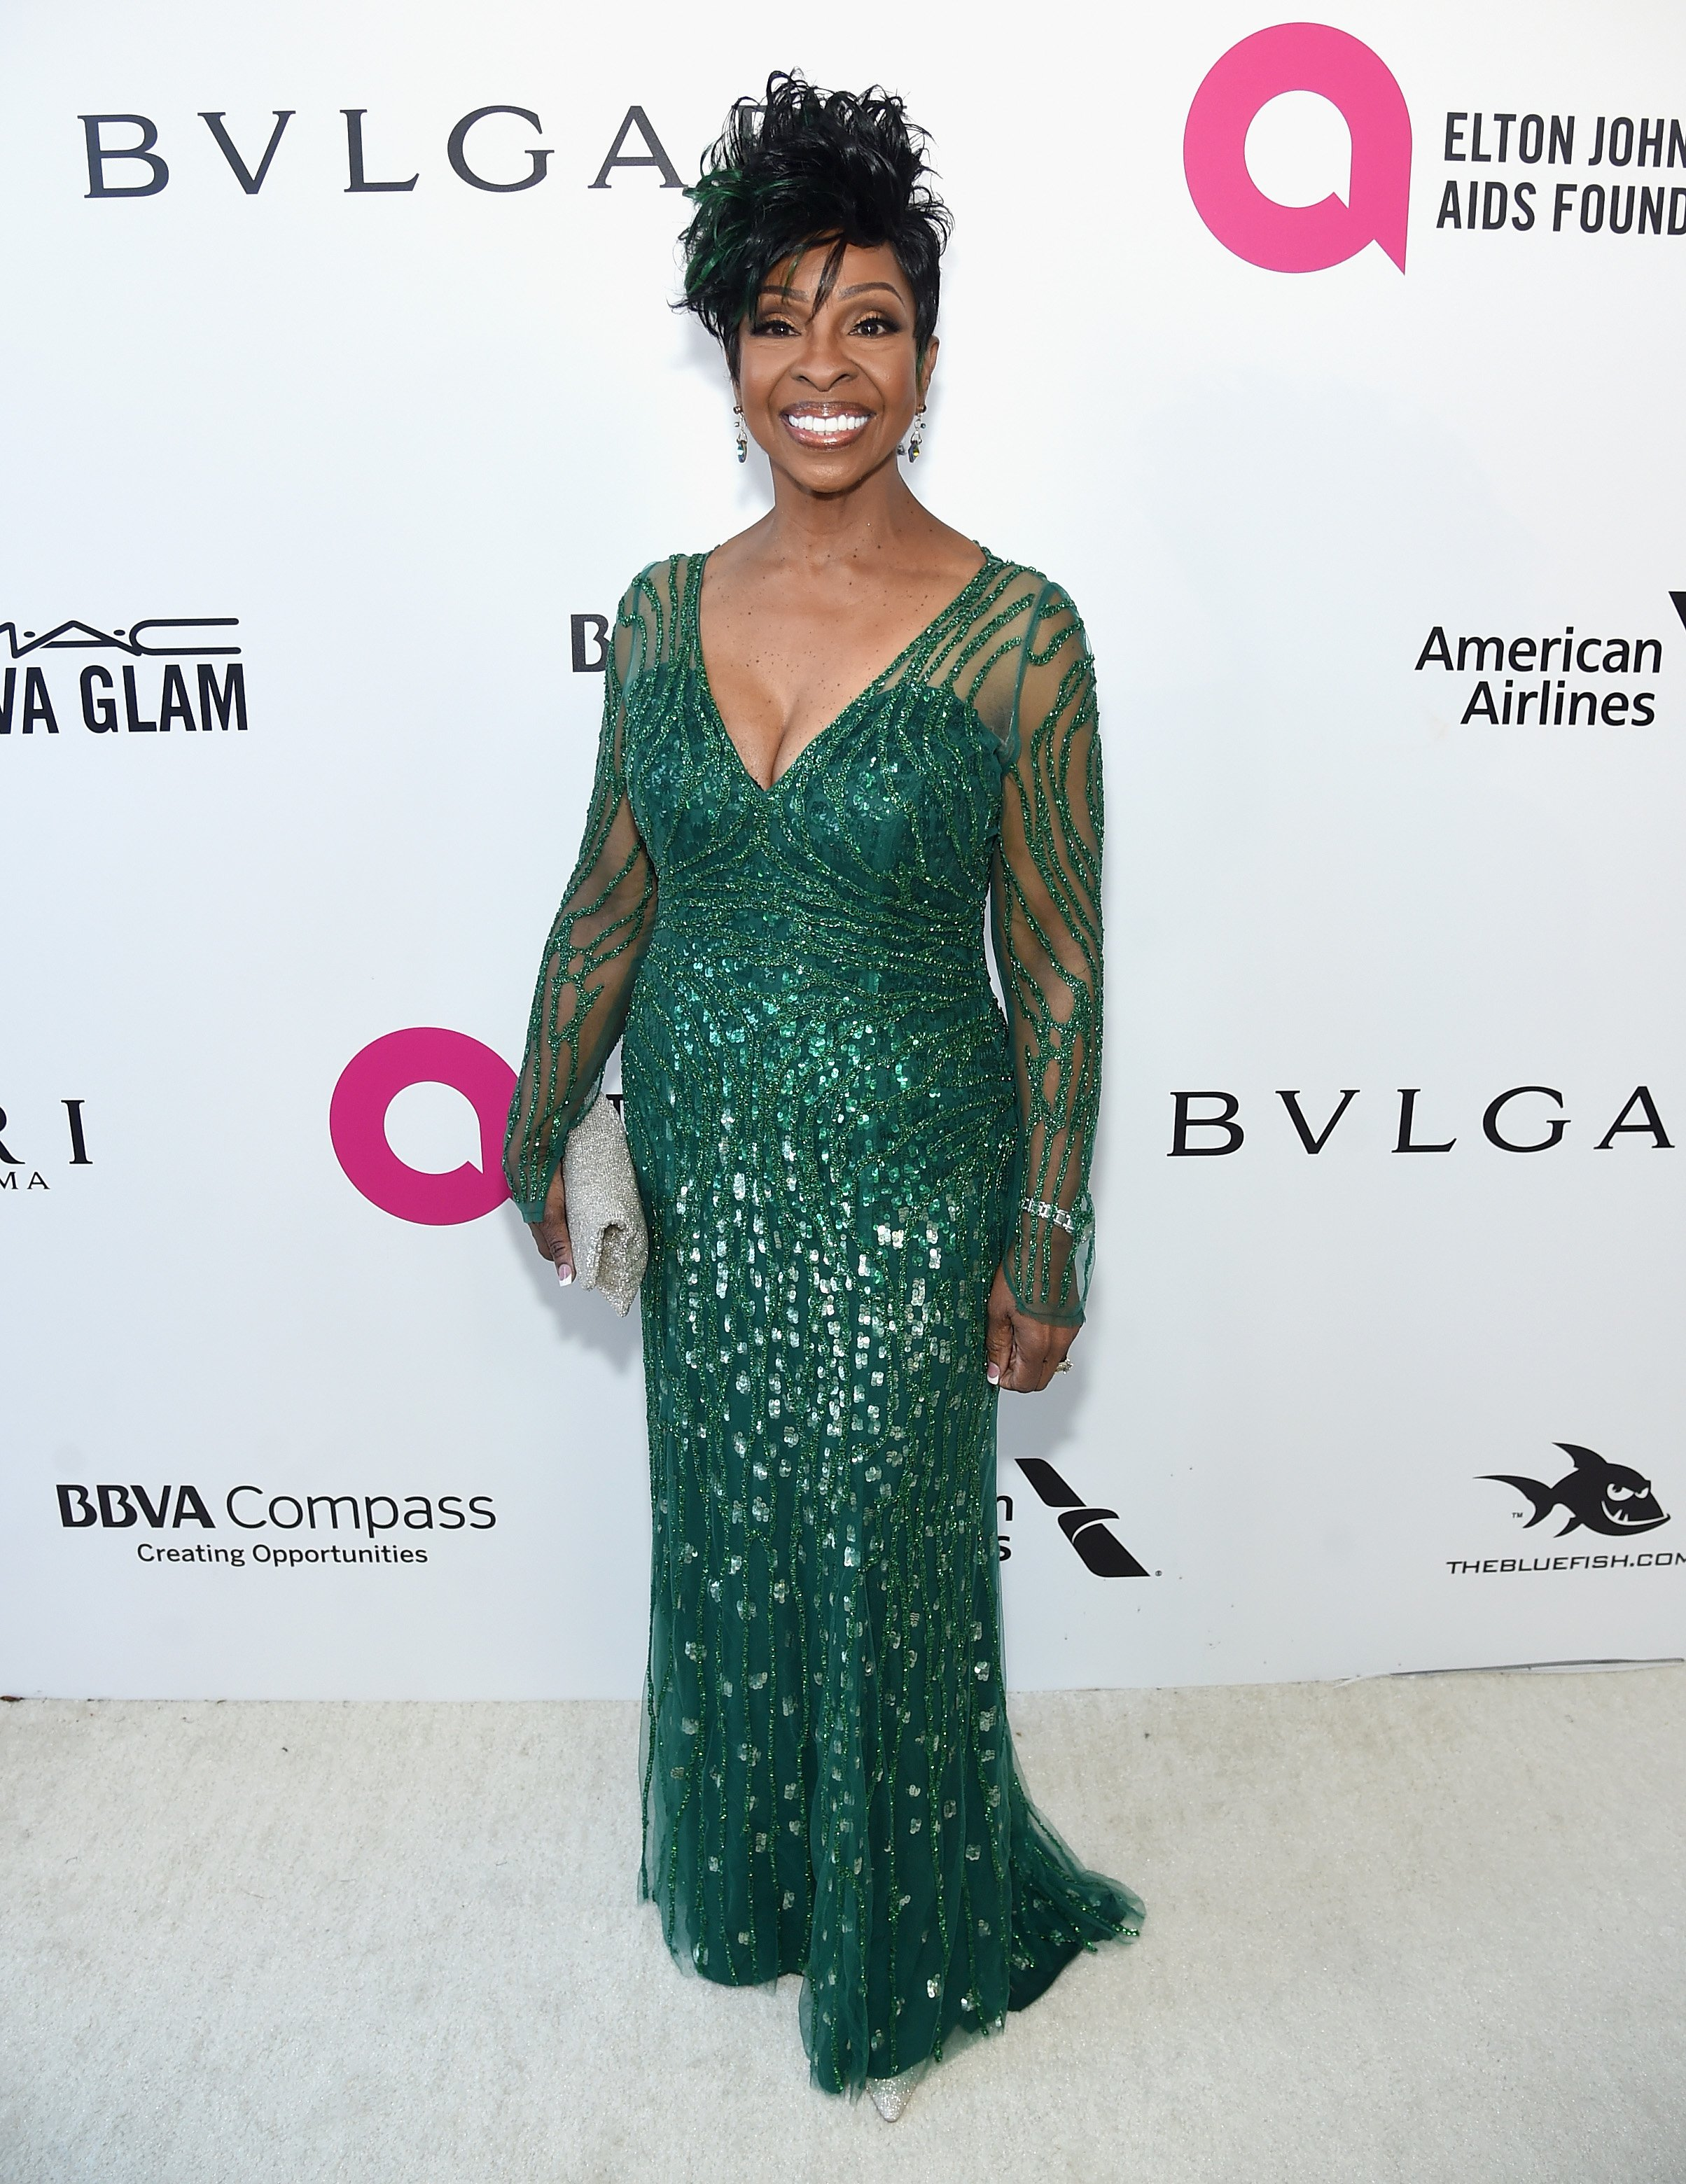 Gladys Knight at the 26th annual Elton John AIDS Foundation's Academy Awards Viewing Party in California on March 4, 2018. | Photo: Getty Images.